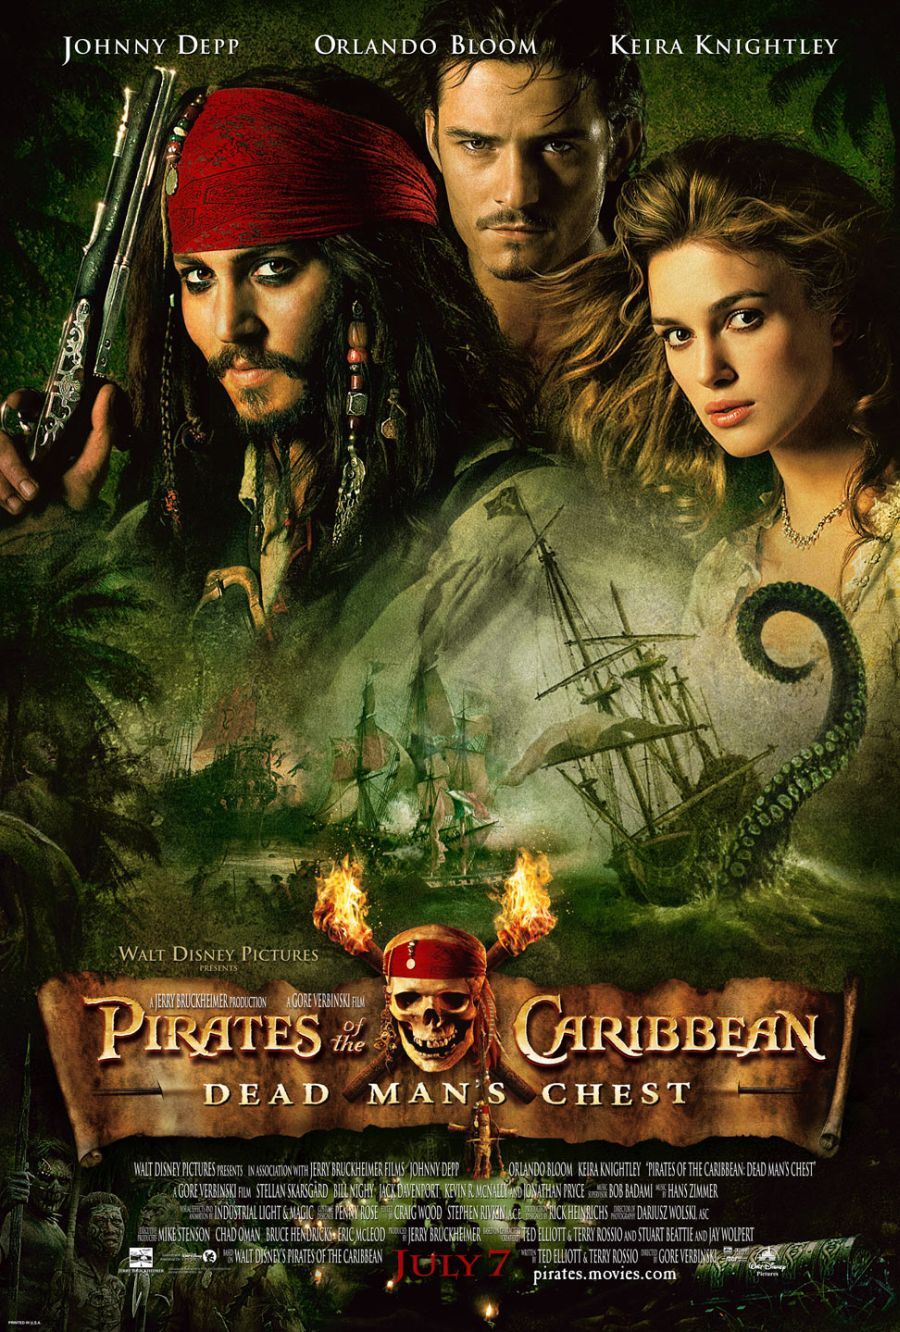 pirates_of_the_caribbean_dead_mans_chest_2006_poster